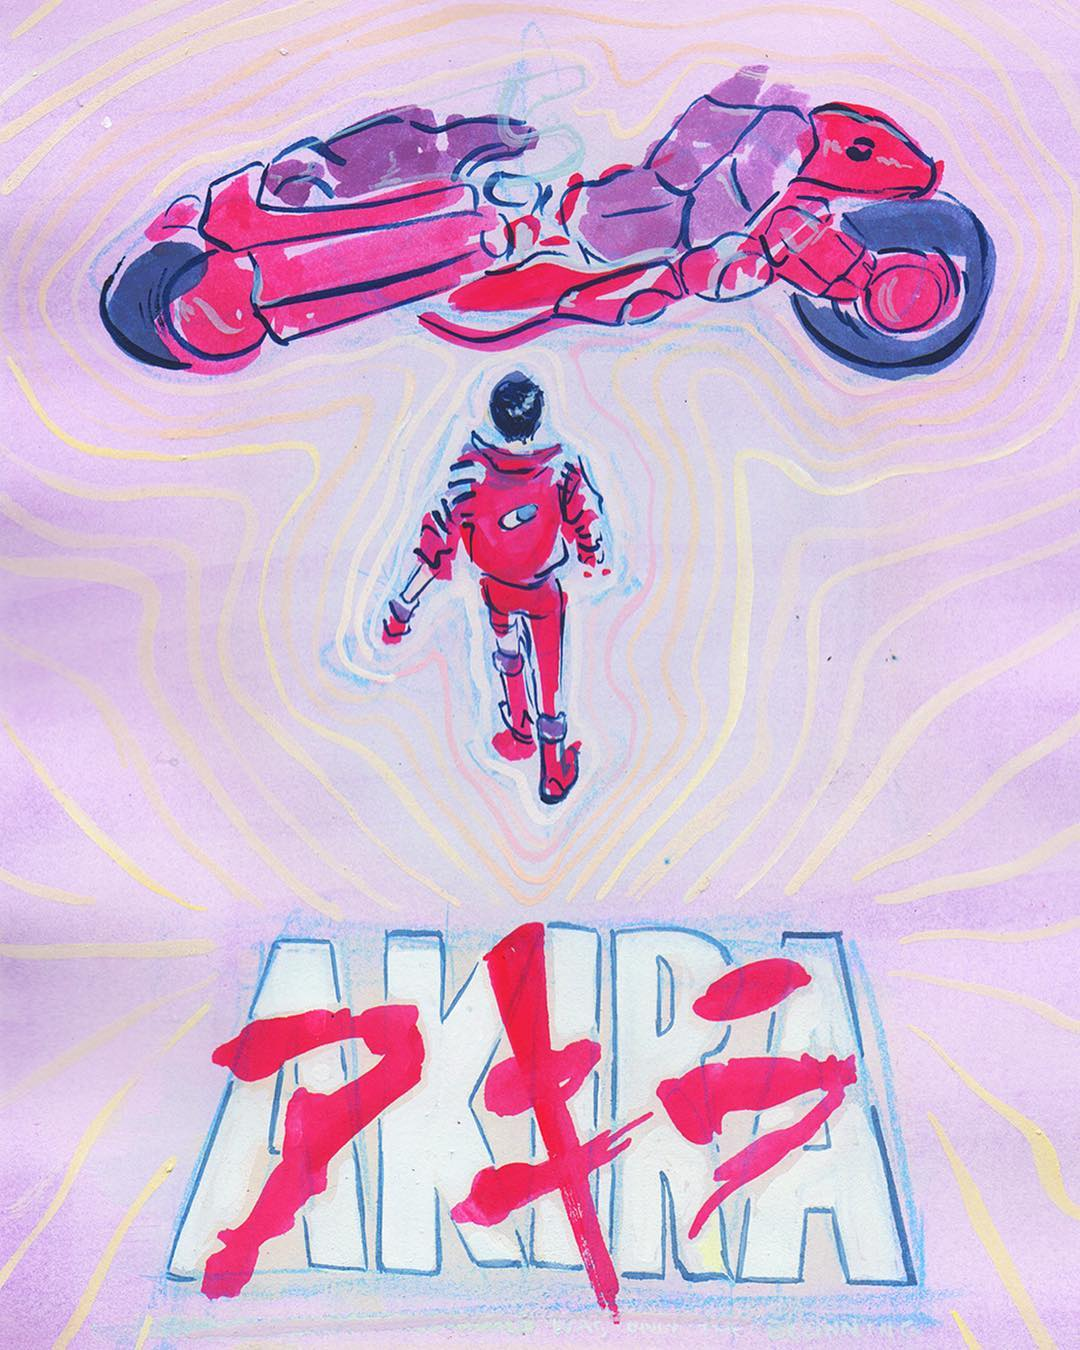 A poster for the film Akira, painted in watercolor.